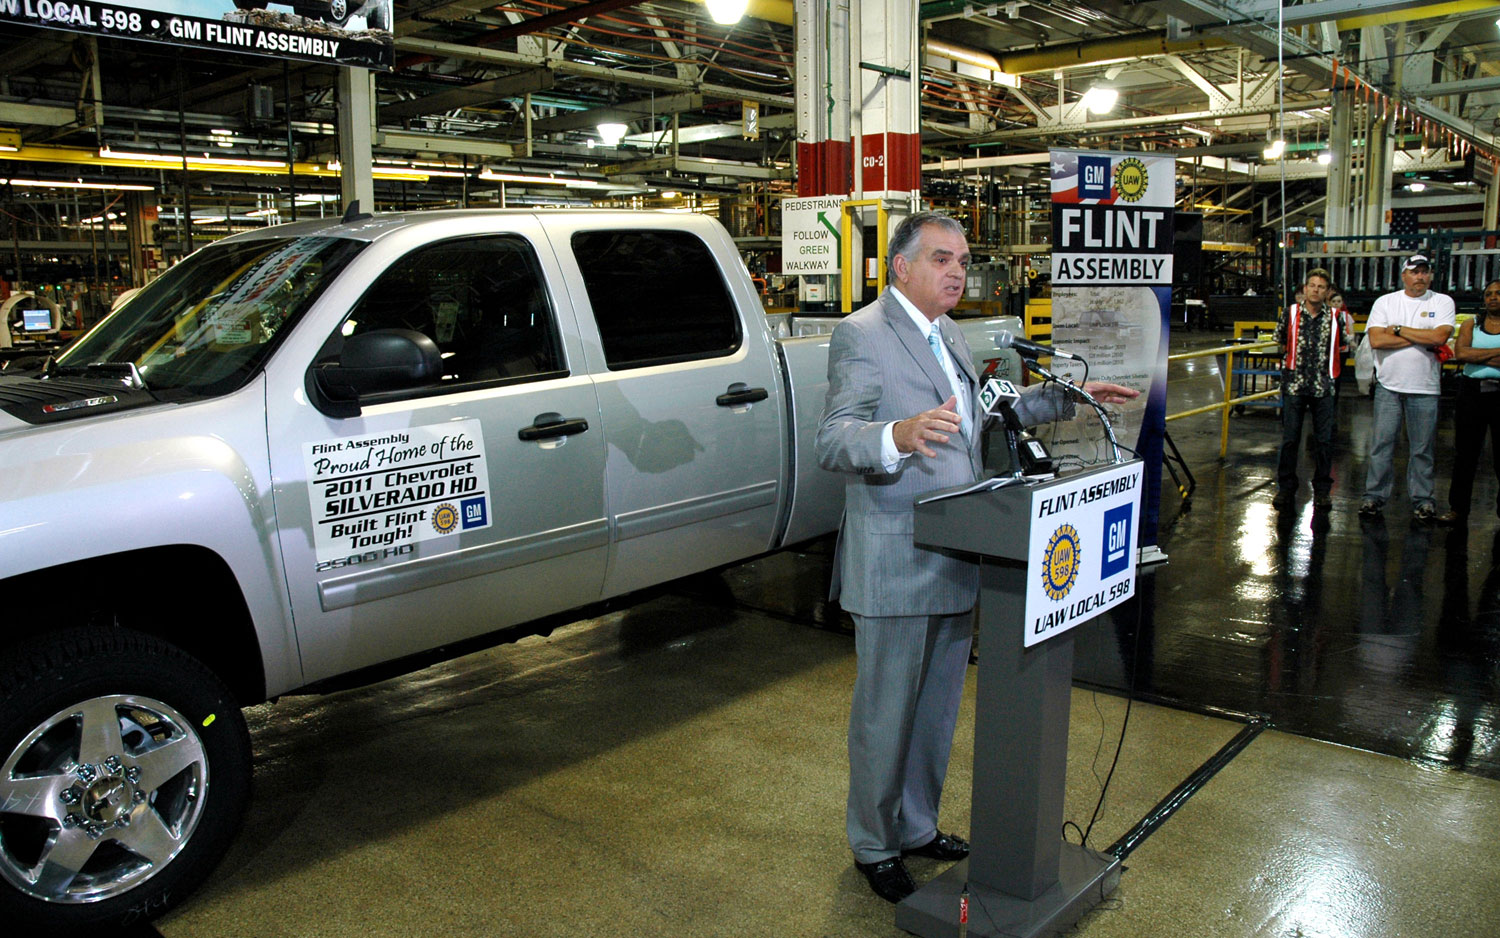 Ray Lahood Visits Gm Flint Assembly Plant1